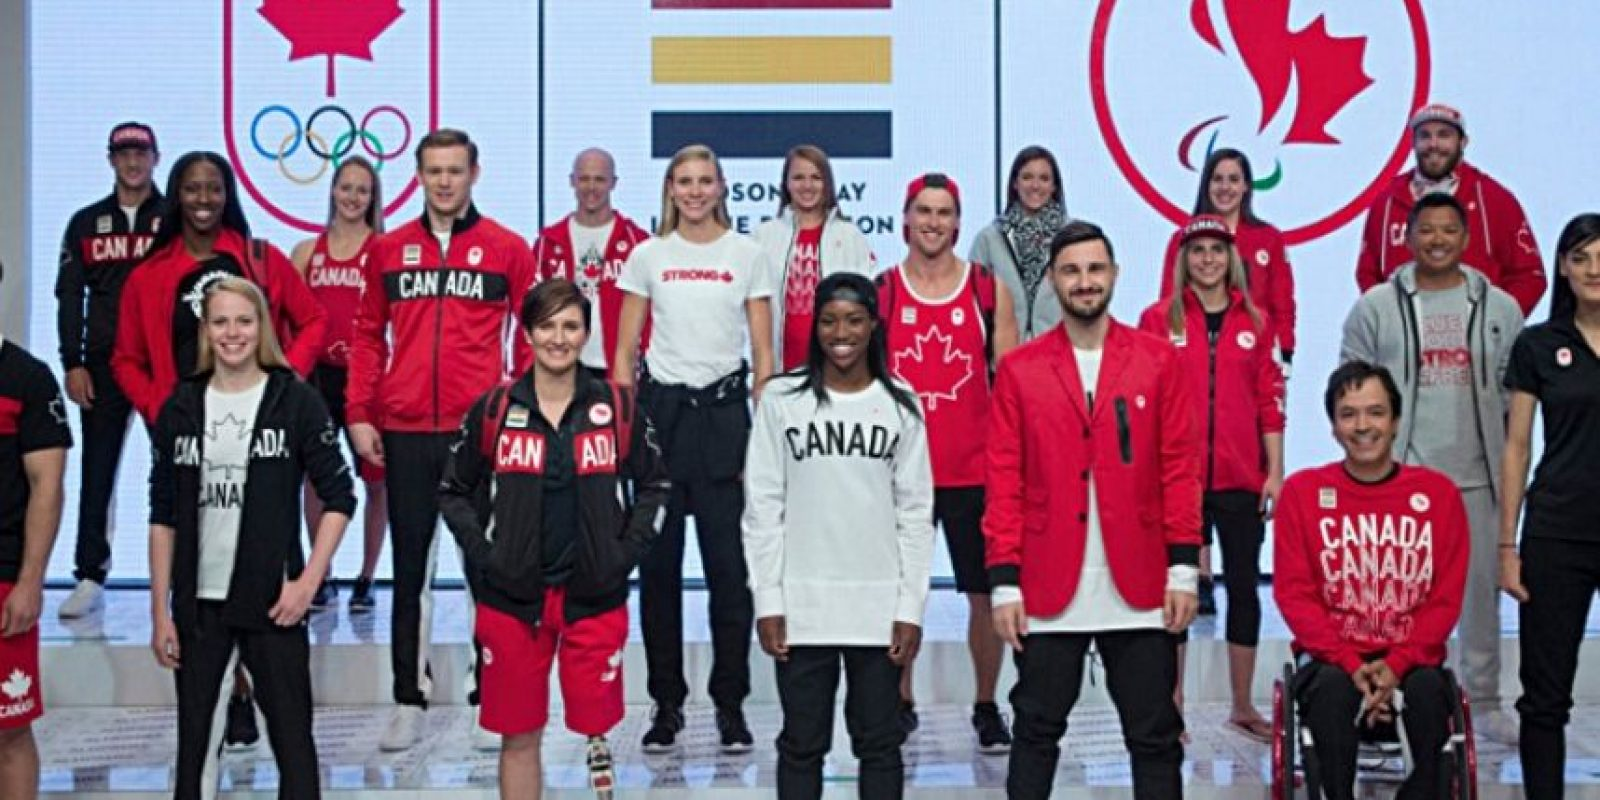 Canadian Olympic Committee Foto: Metro